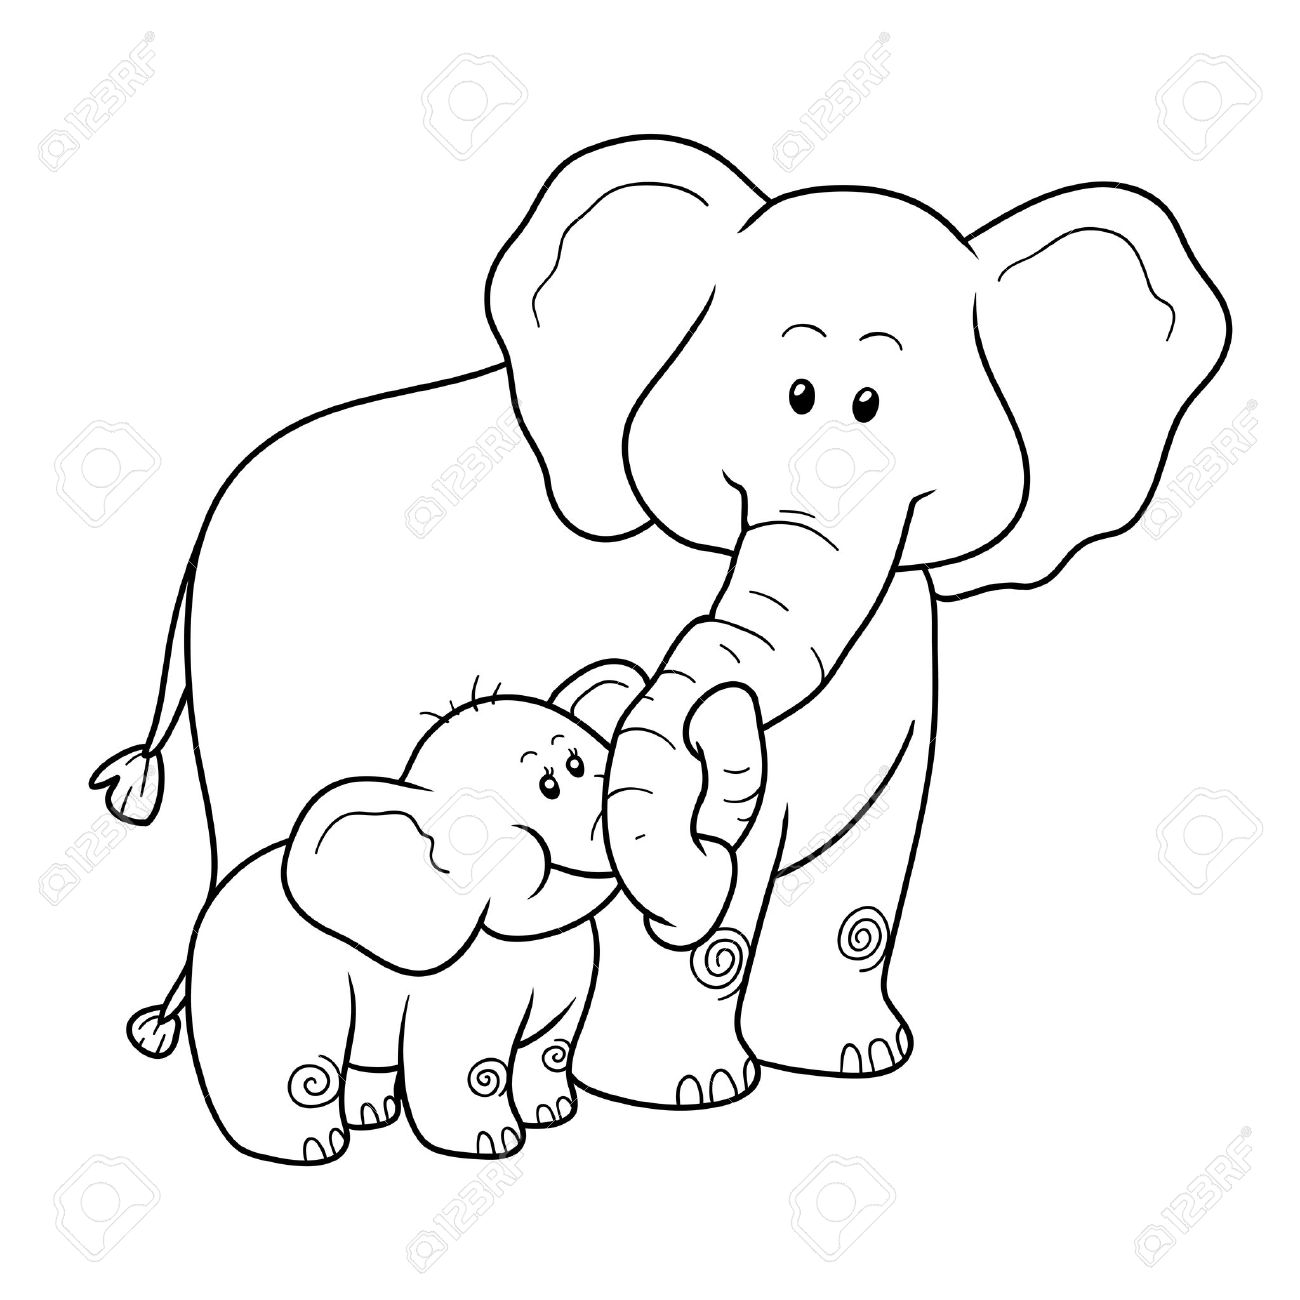 Coloring Book For Children Education Game Elephants Stock Vector